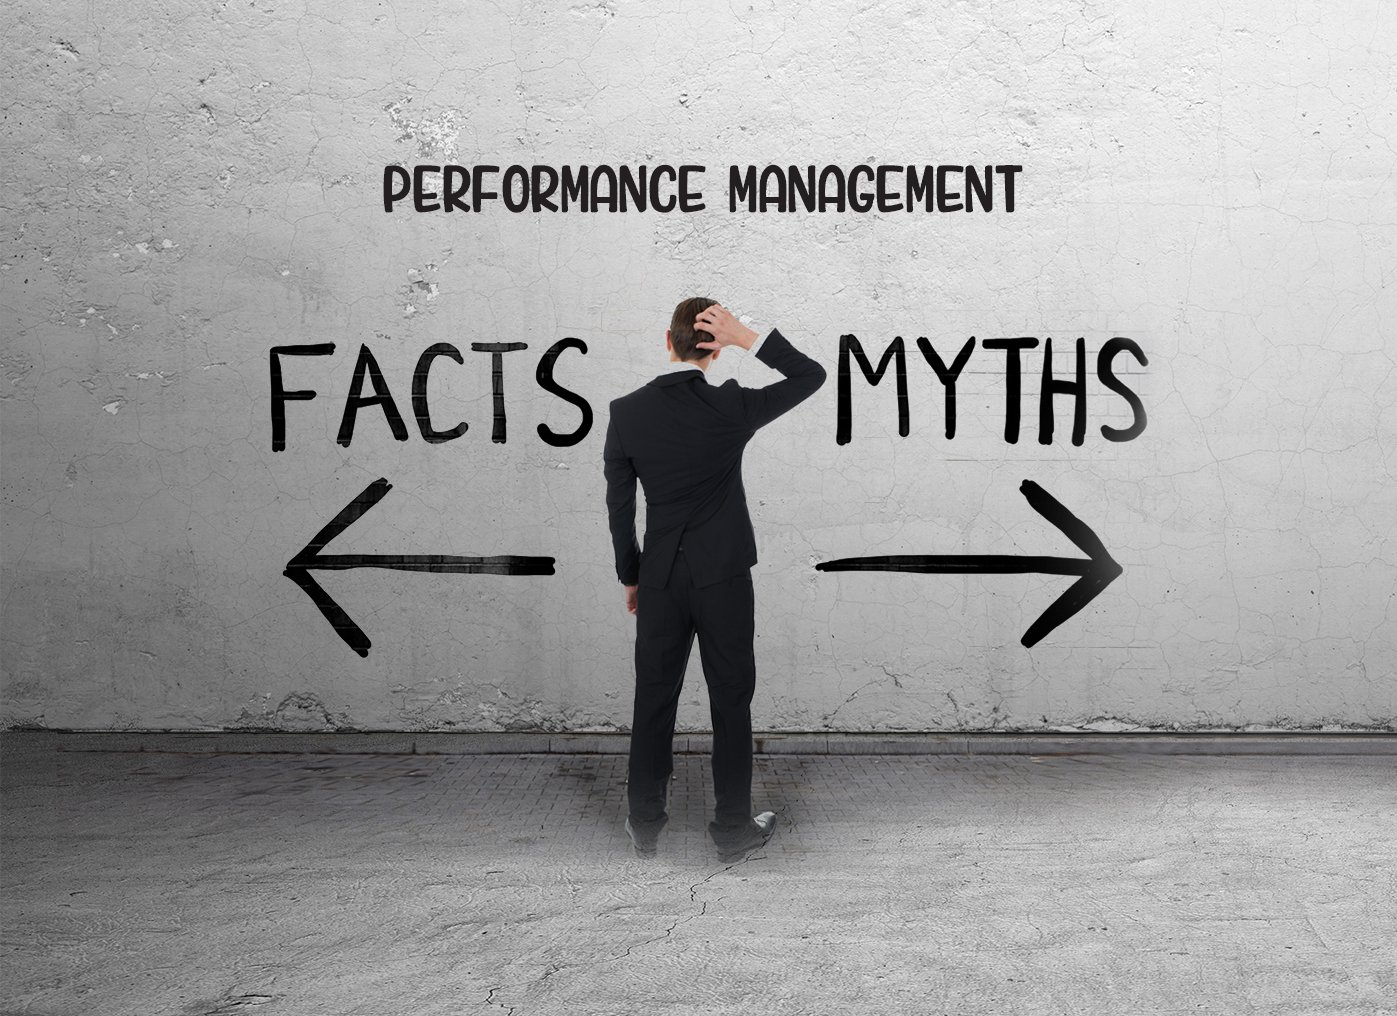 Three Myths About Performance Management